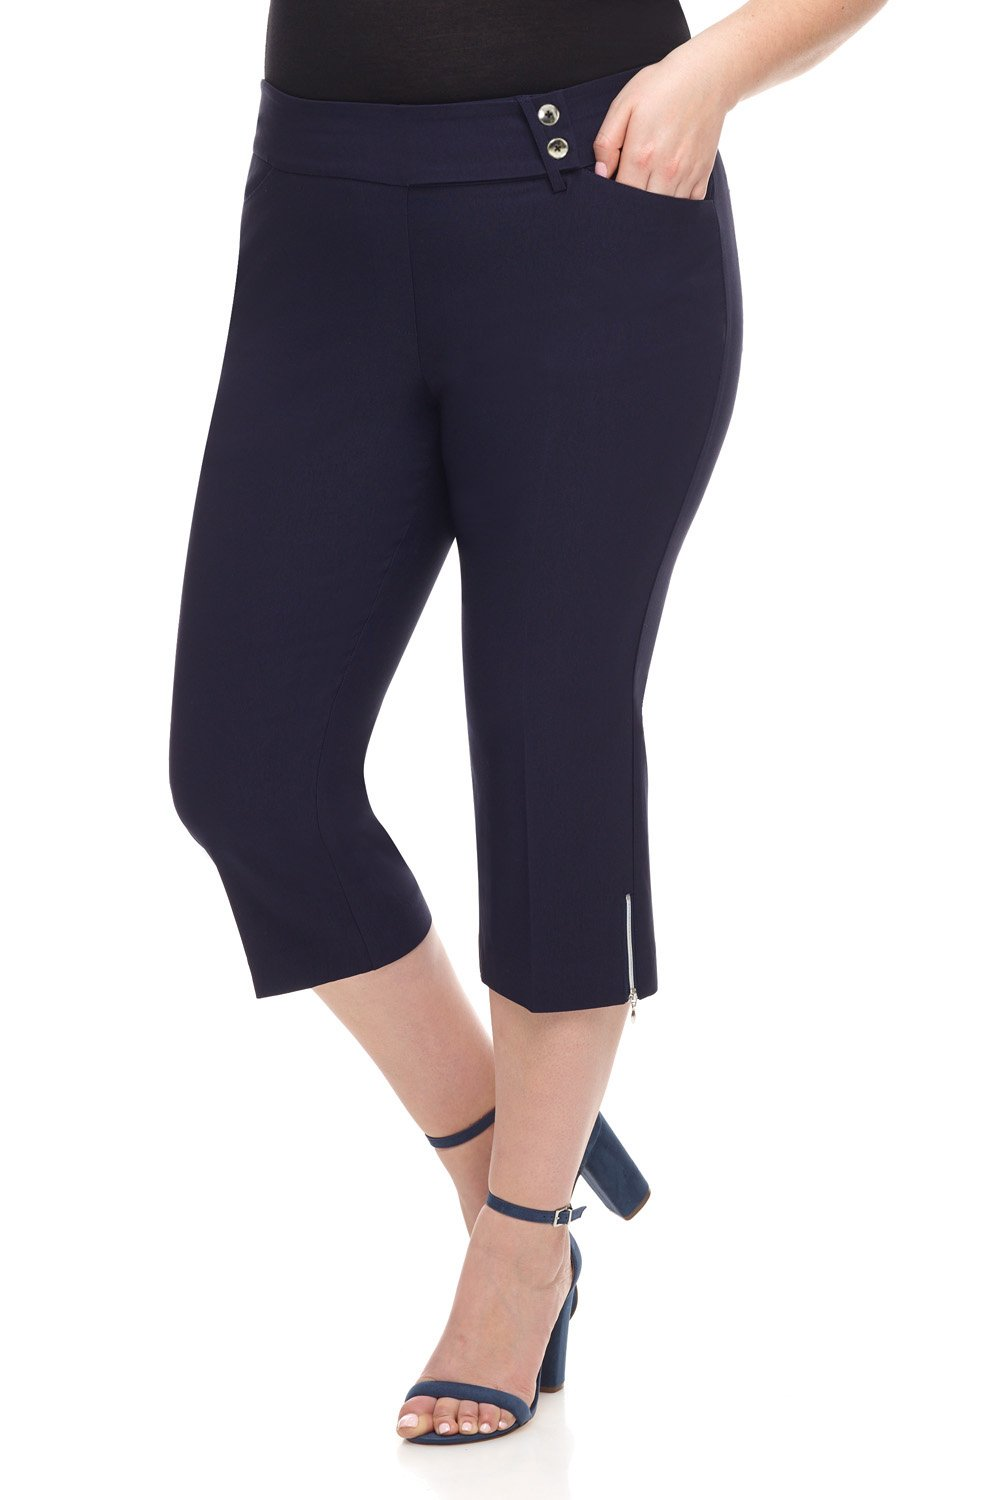 Rekucci Curvy Woman Plus Size Chic Capri with Zipper Detail (20W,Navy)